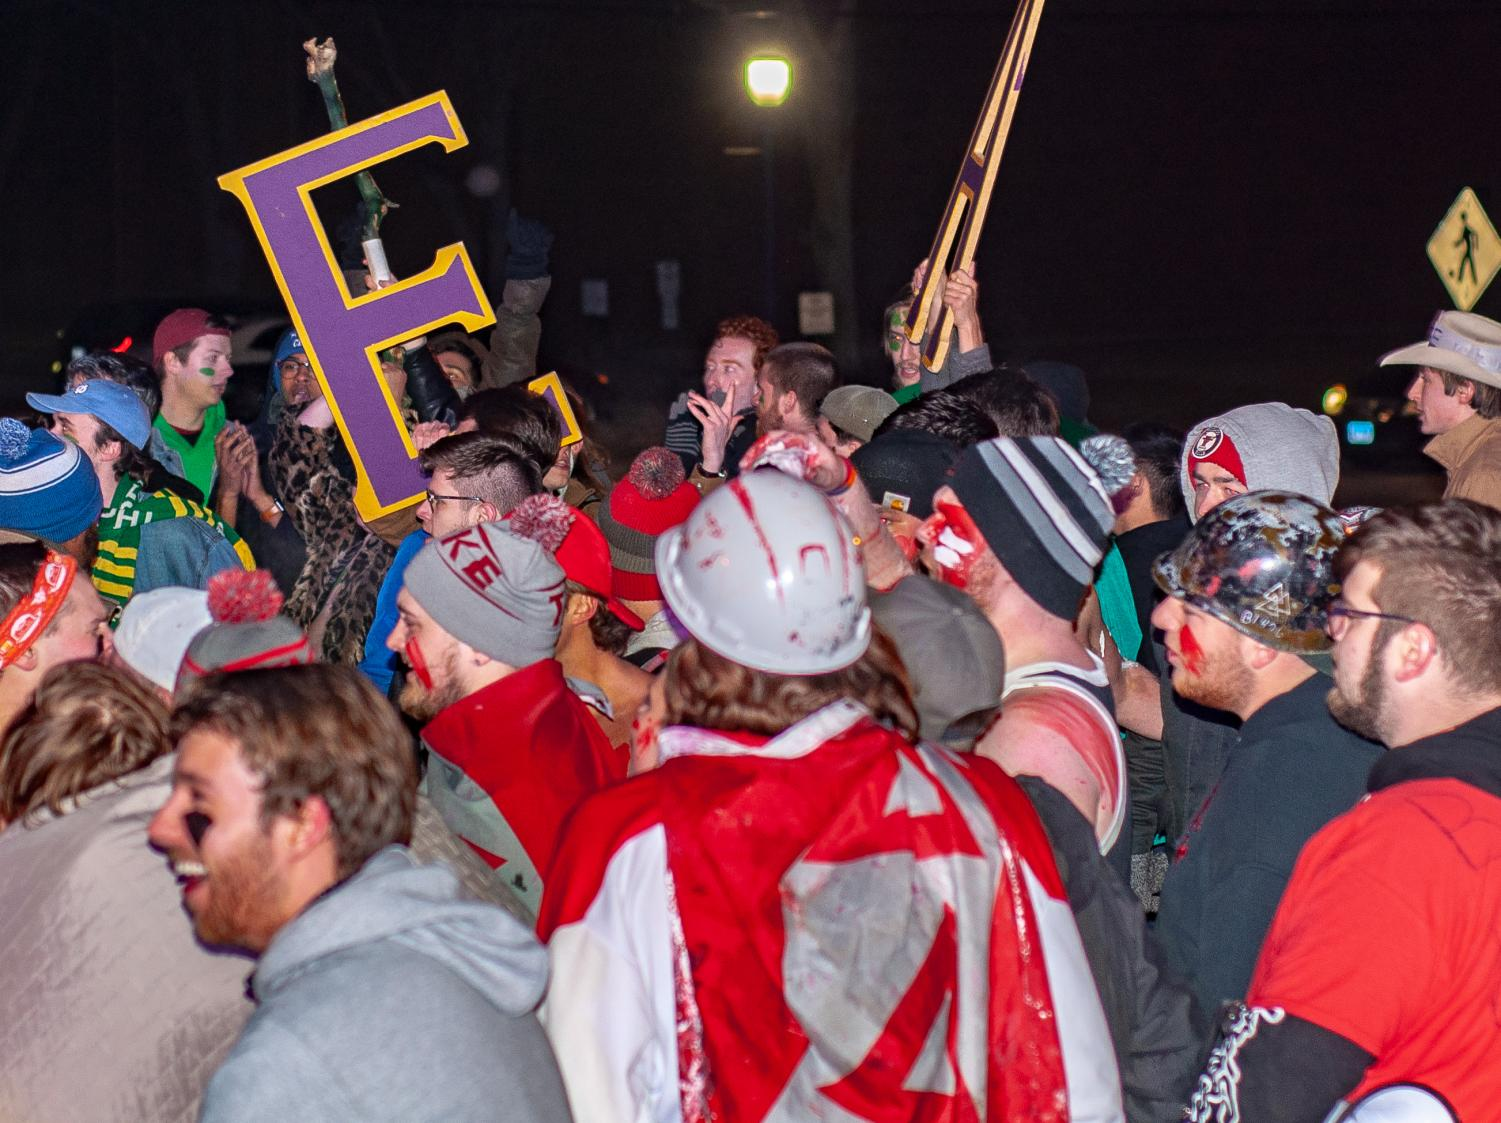 Fraternity brothers rush home at